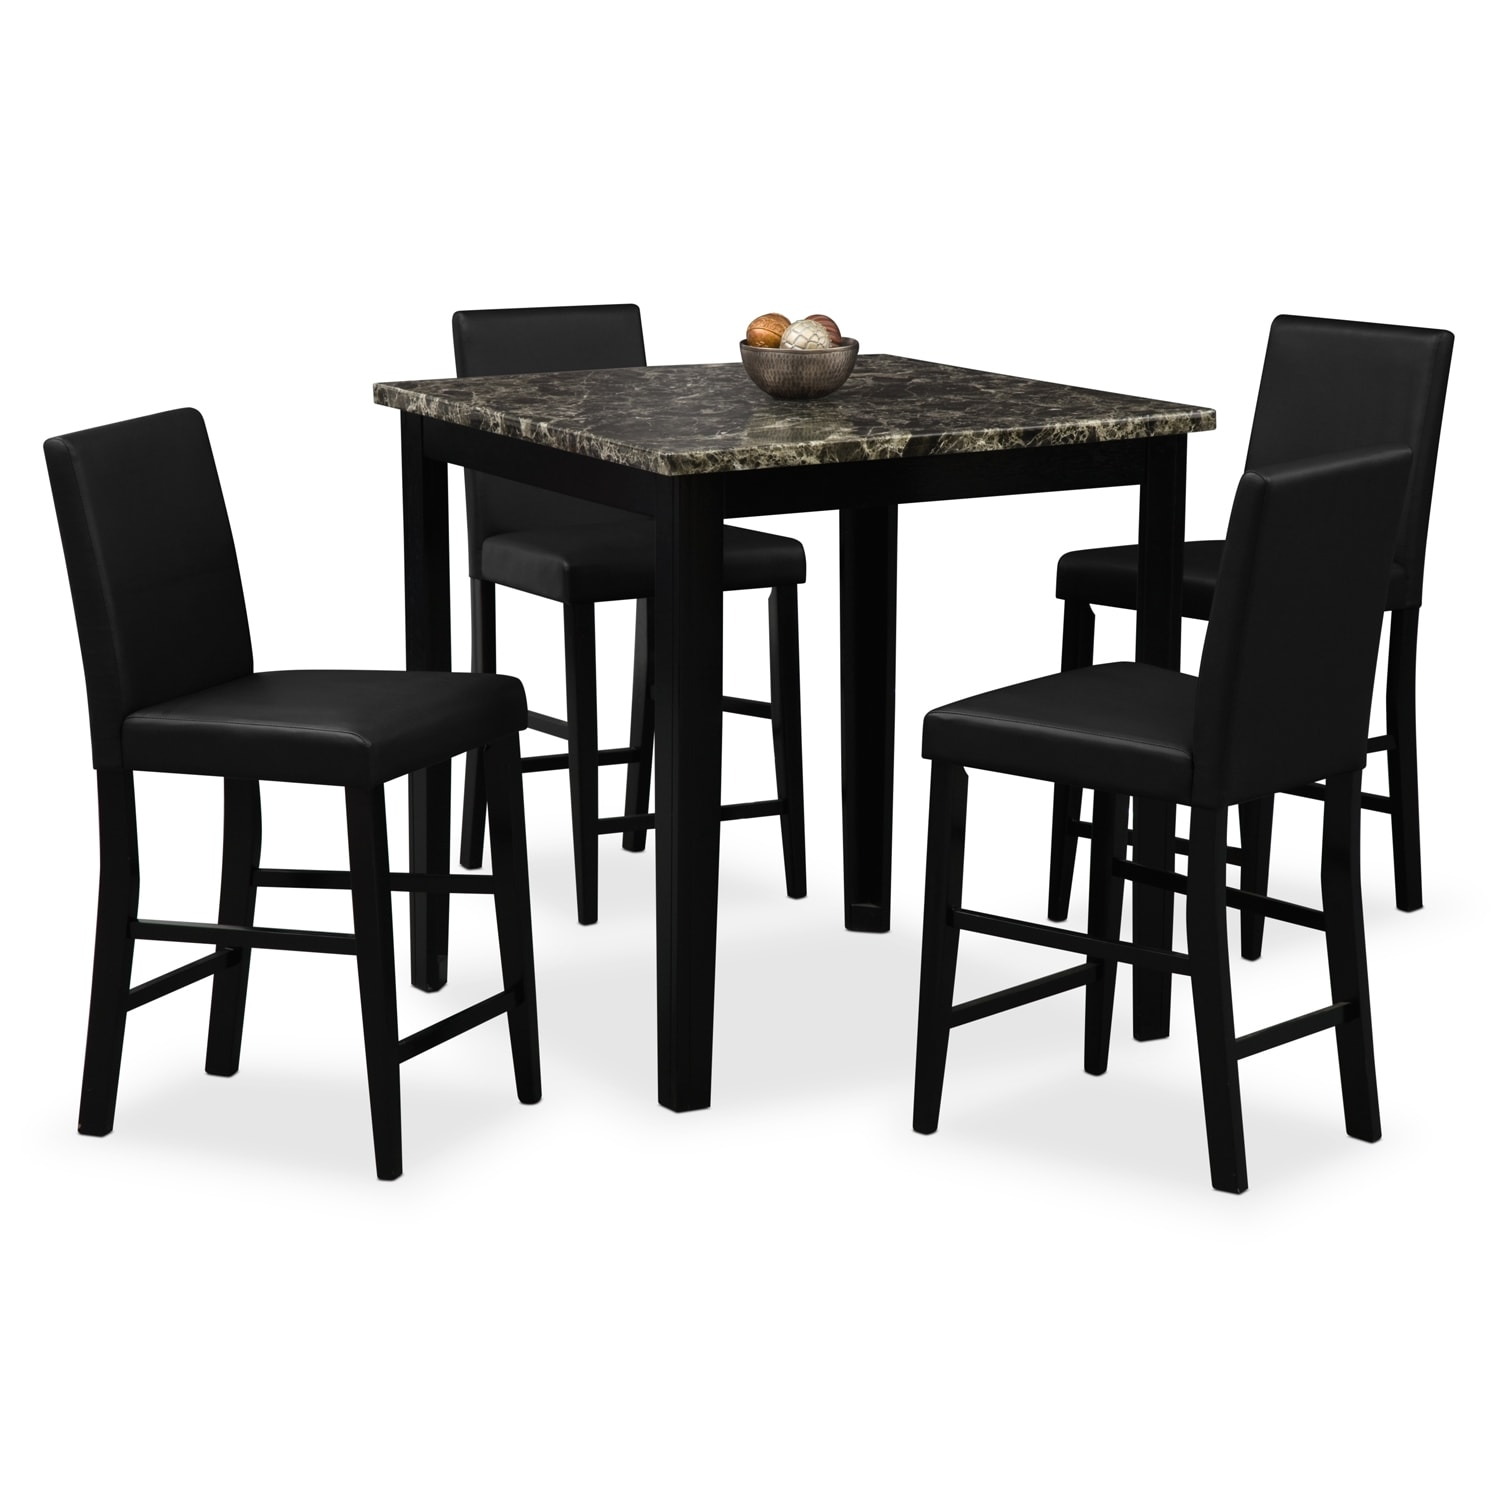 Shadow counter height table and 4 chairs black value city furniture - Black dining room tables ...